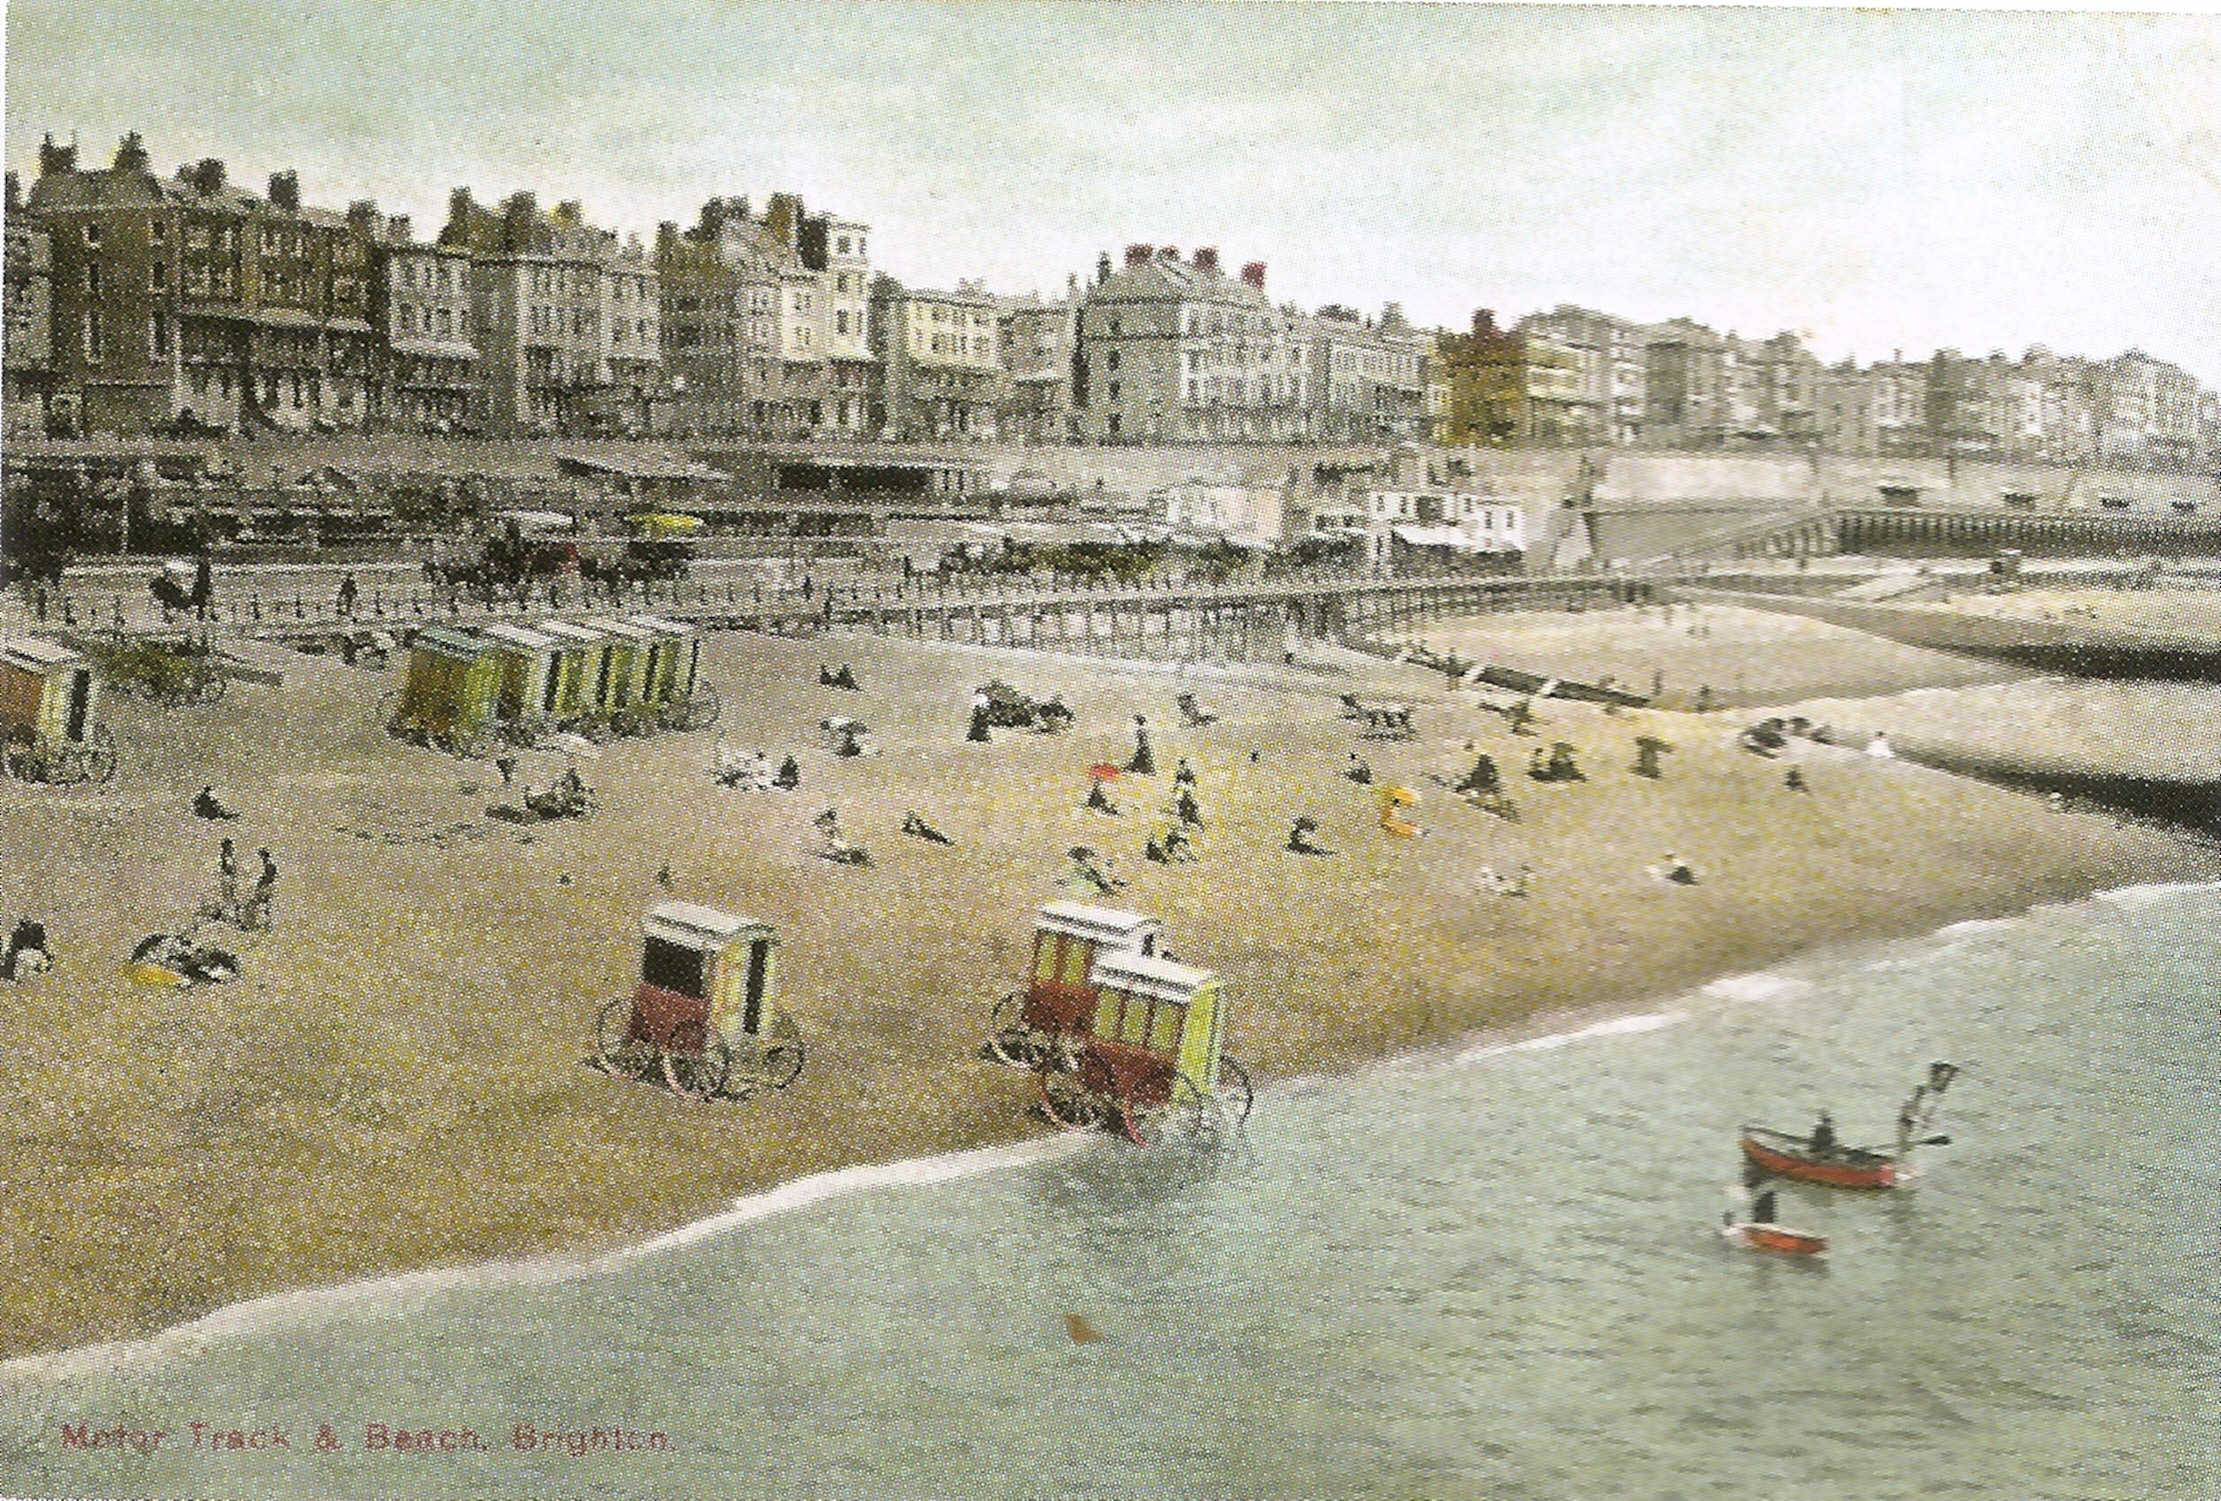 Victorian and Edwardian bathing machines at Brighton were brightly painted and had curved, stepped roofs